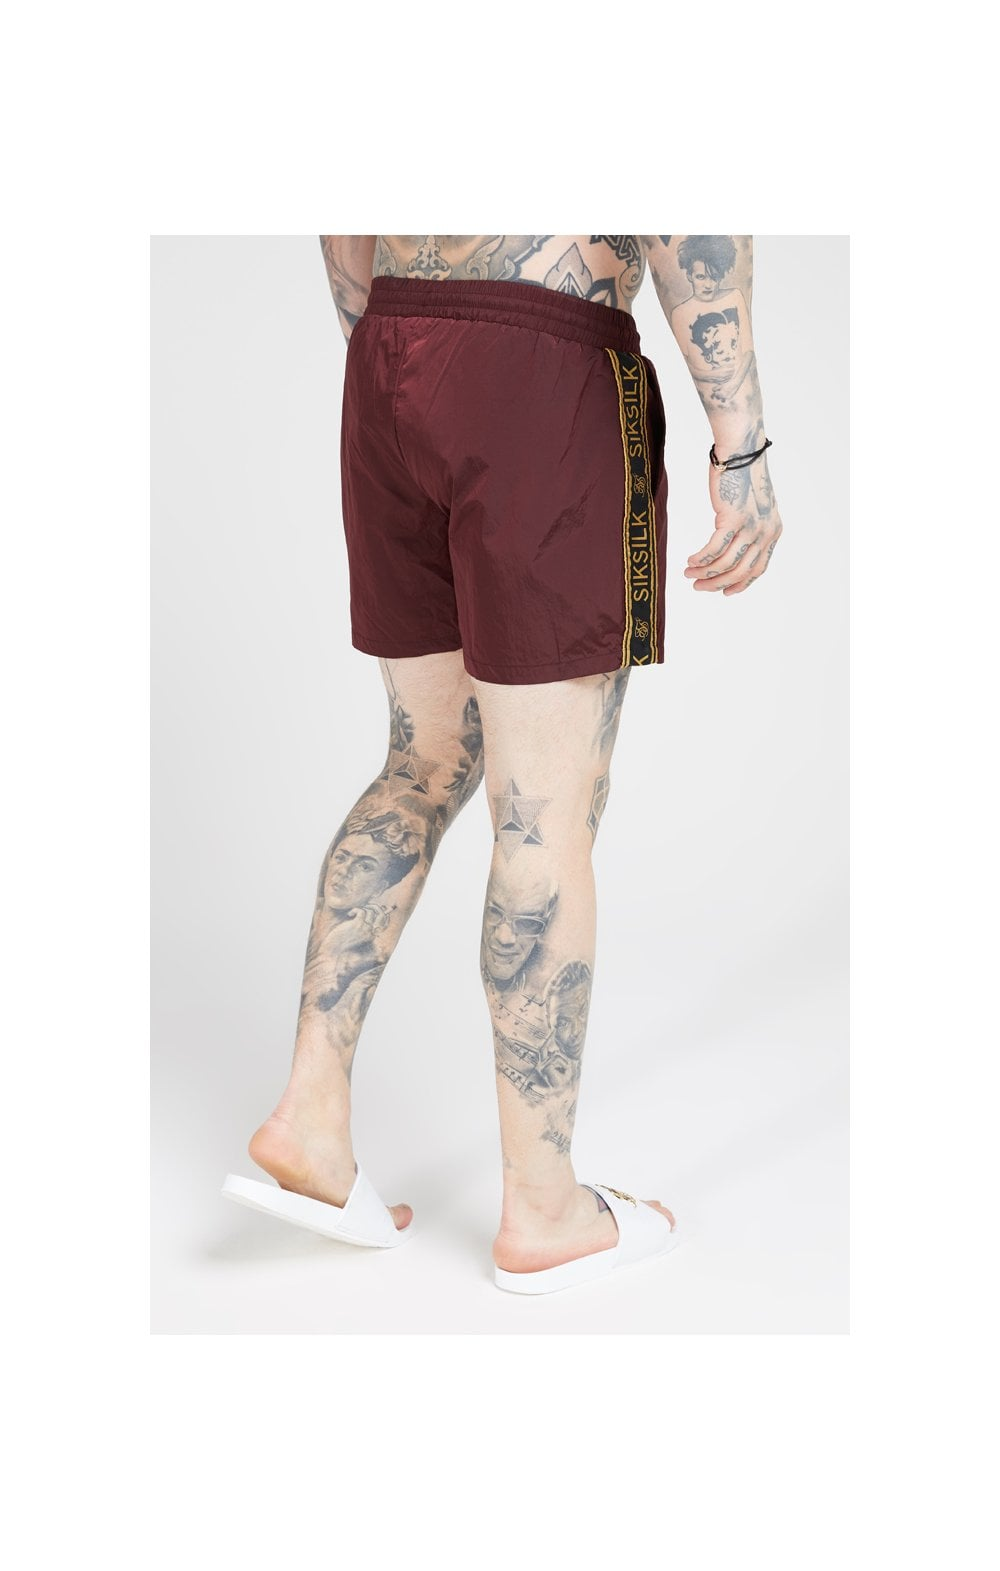 SikSilk Crushed Nylon Tape Shorts – Burgundy & Gold (4)